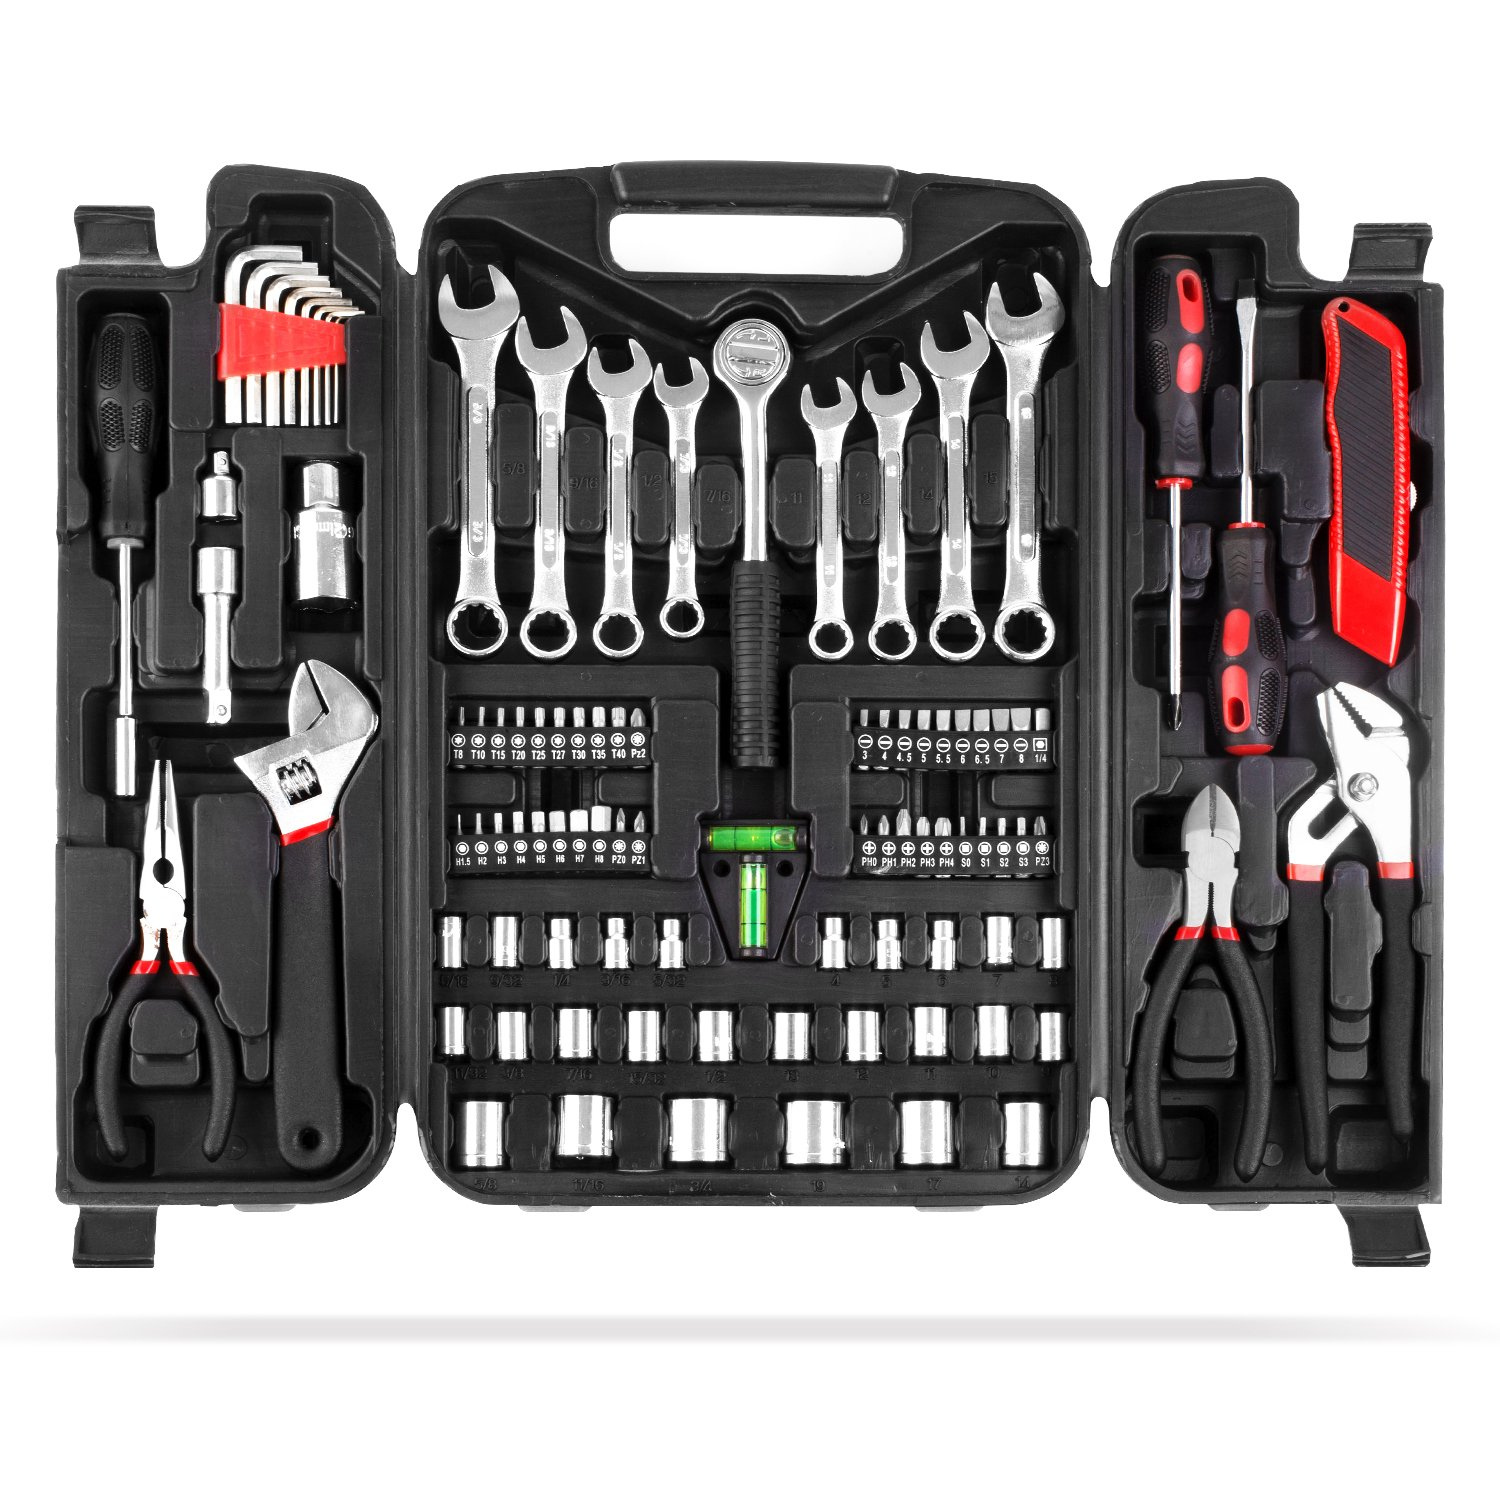 MVPOWER 95 Piece Home Mechanics Repair Tool Kit,General Household Hand Tool Set Wrench Set with Plastic Toolbox Storage Case